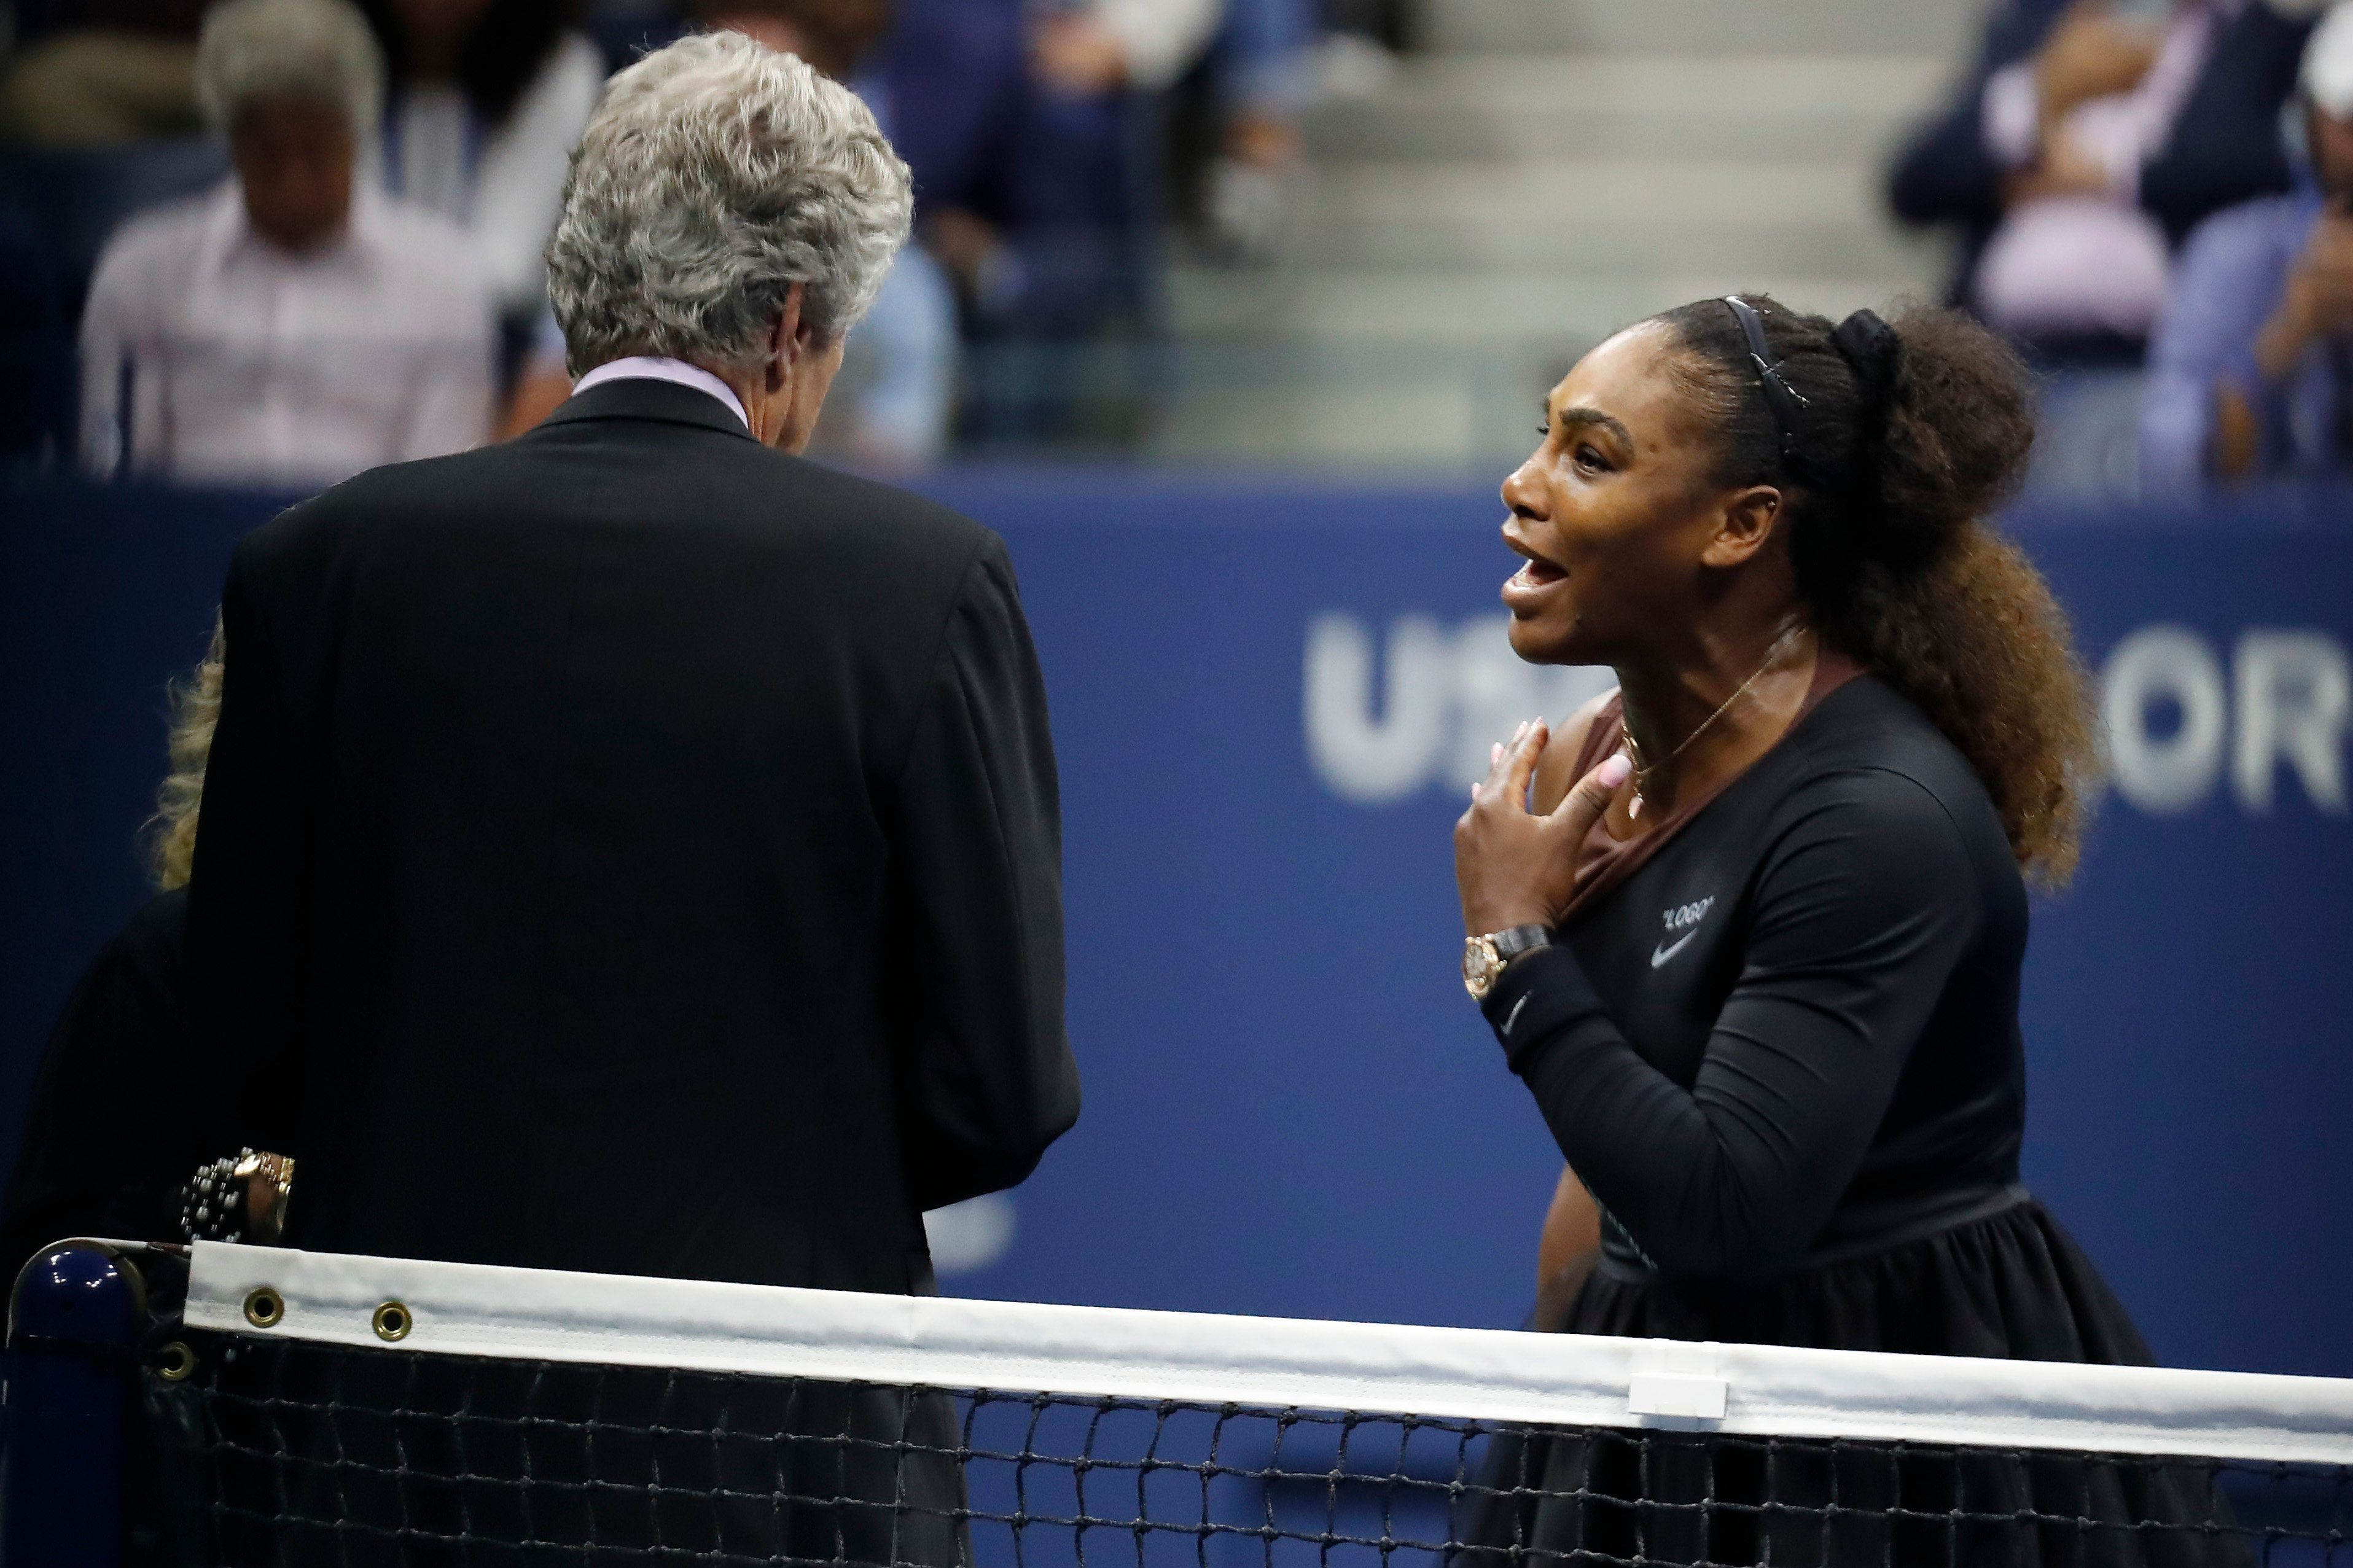 Quick Rundown of What Happened Between Serena and the Umpire